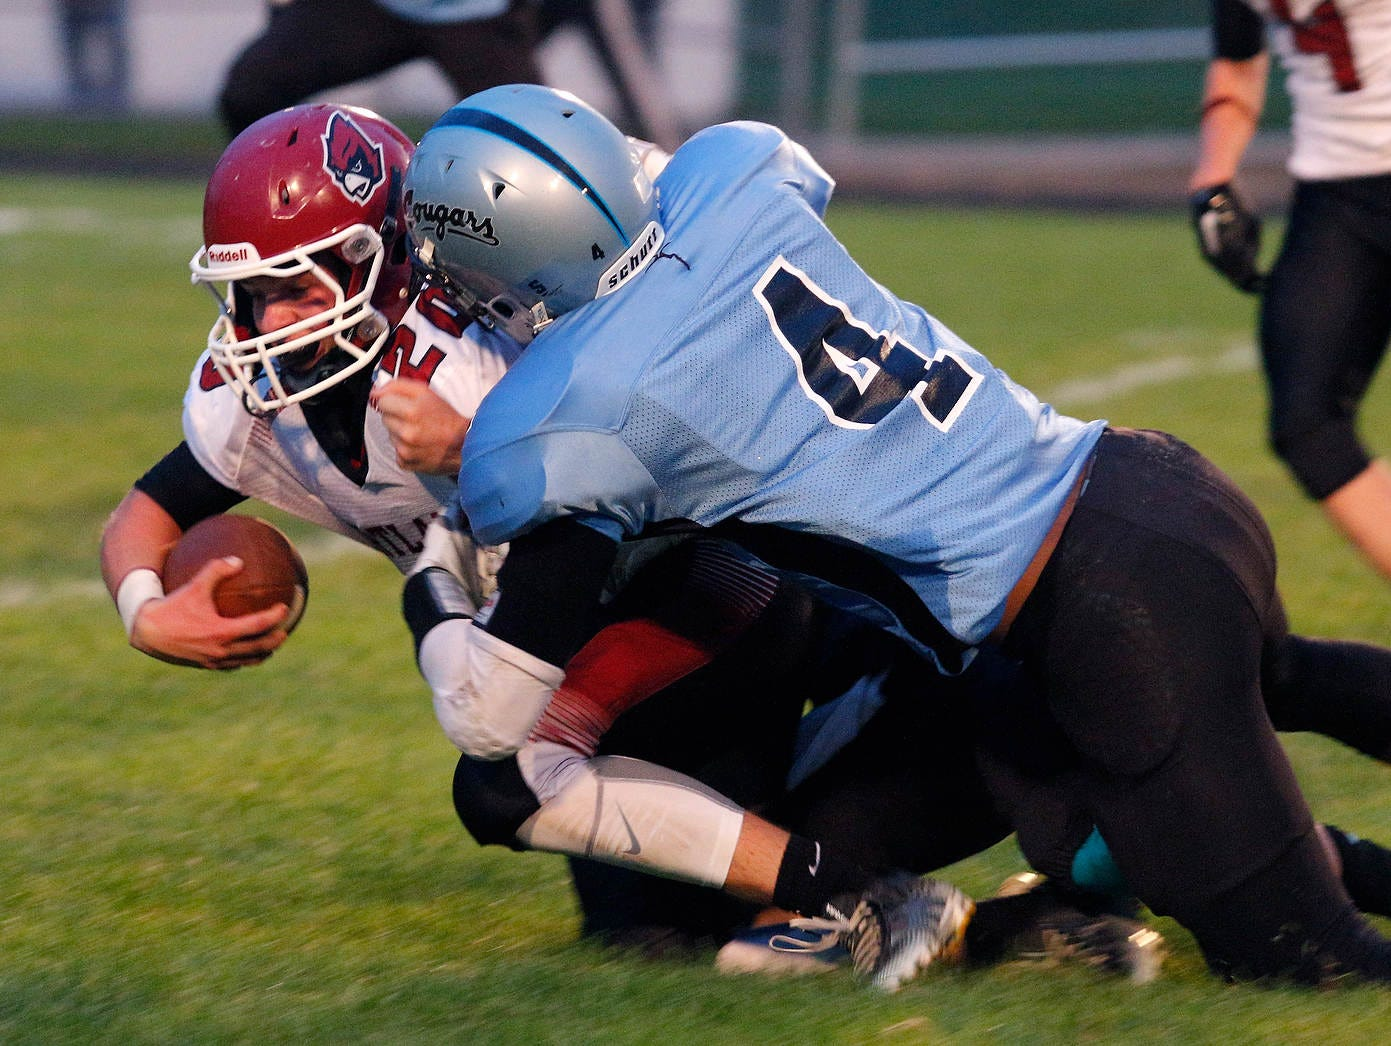 Portland'x Gabe Schrauben, left, is brought down by Lansing Catholic's Mitchell McInnis (4) Friday, Sept. 18, 2015, in Holt, Mich.